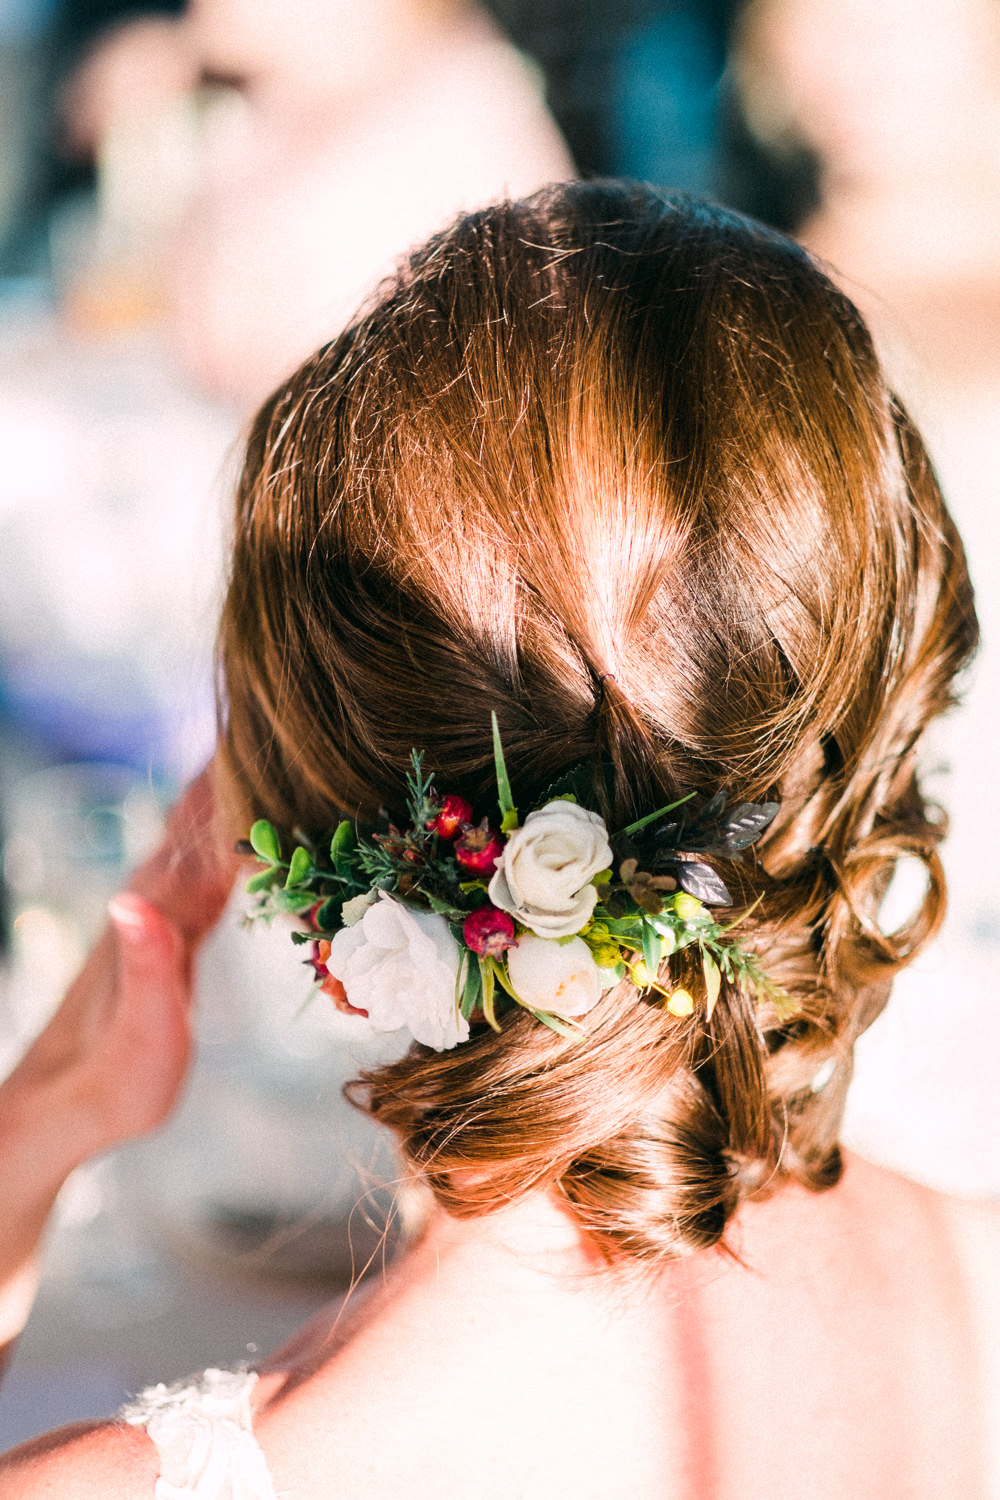 Bride Bridal Hair Up Do Flowers Floral Utopia Broughton Hall Wedding Christopher Thomas Photography